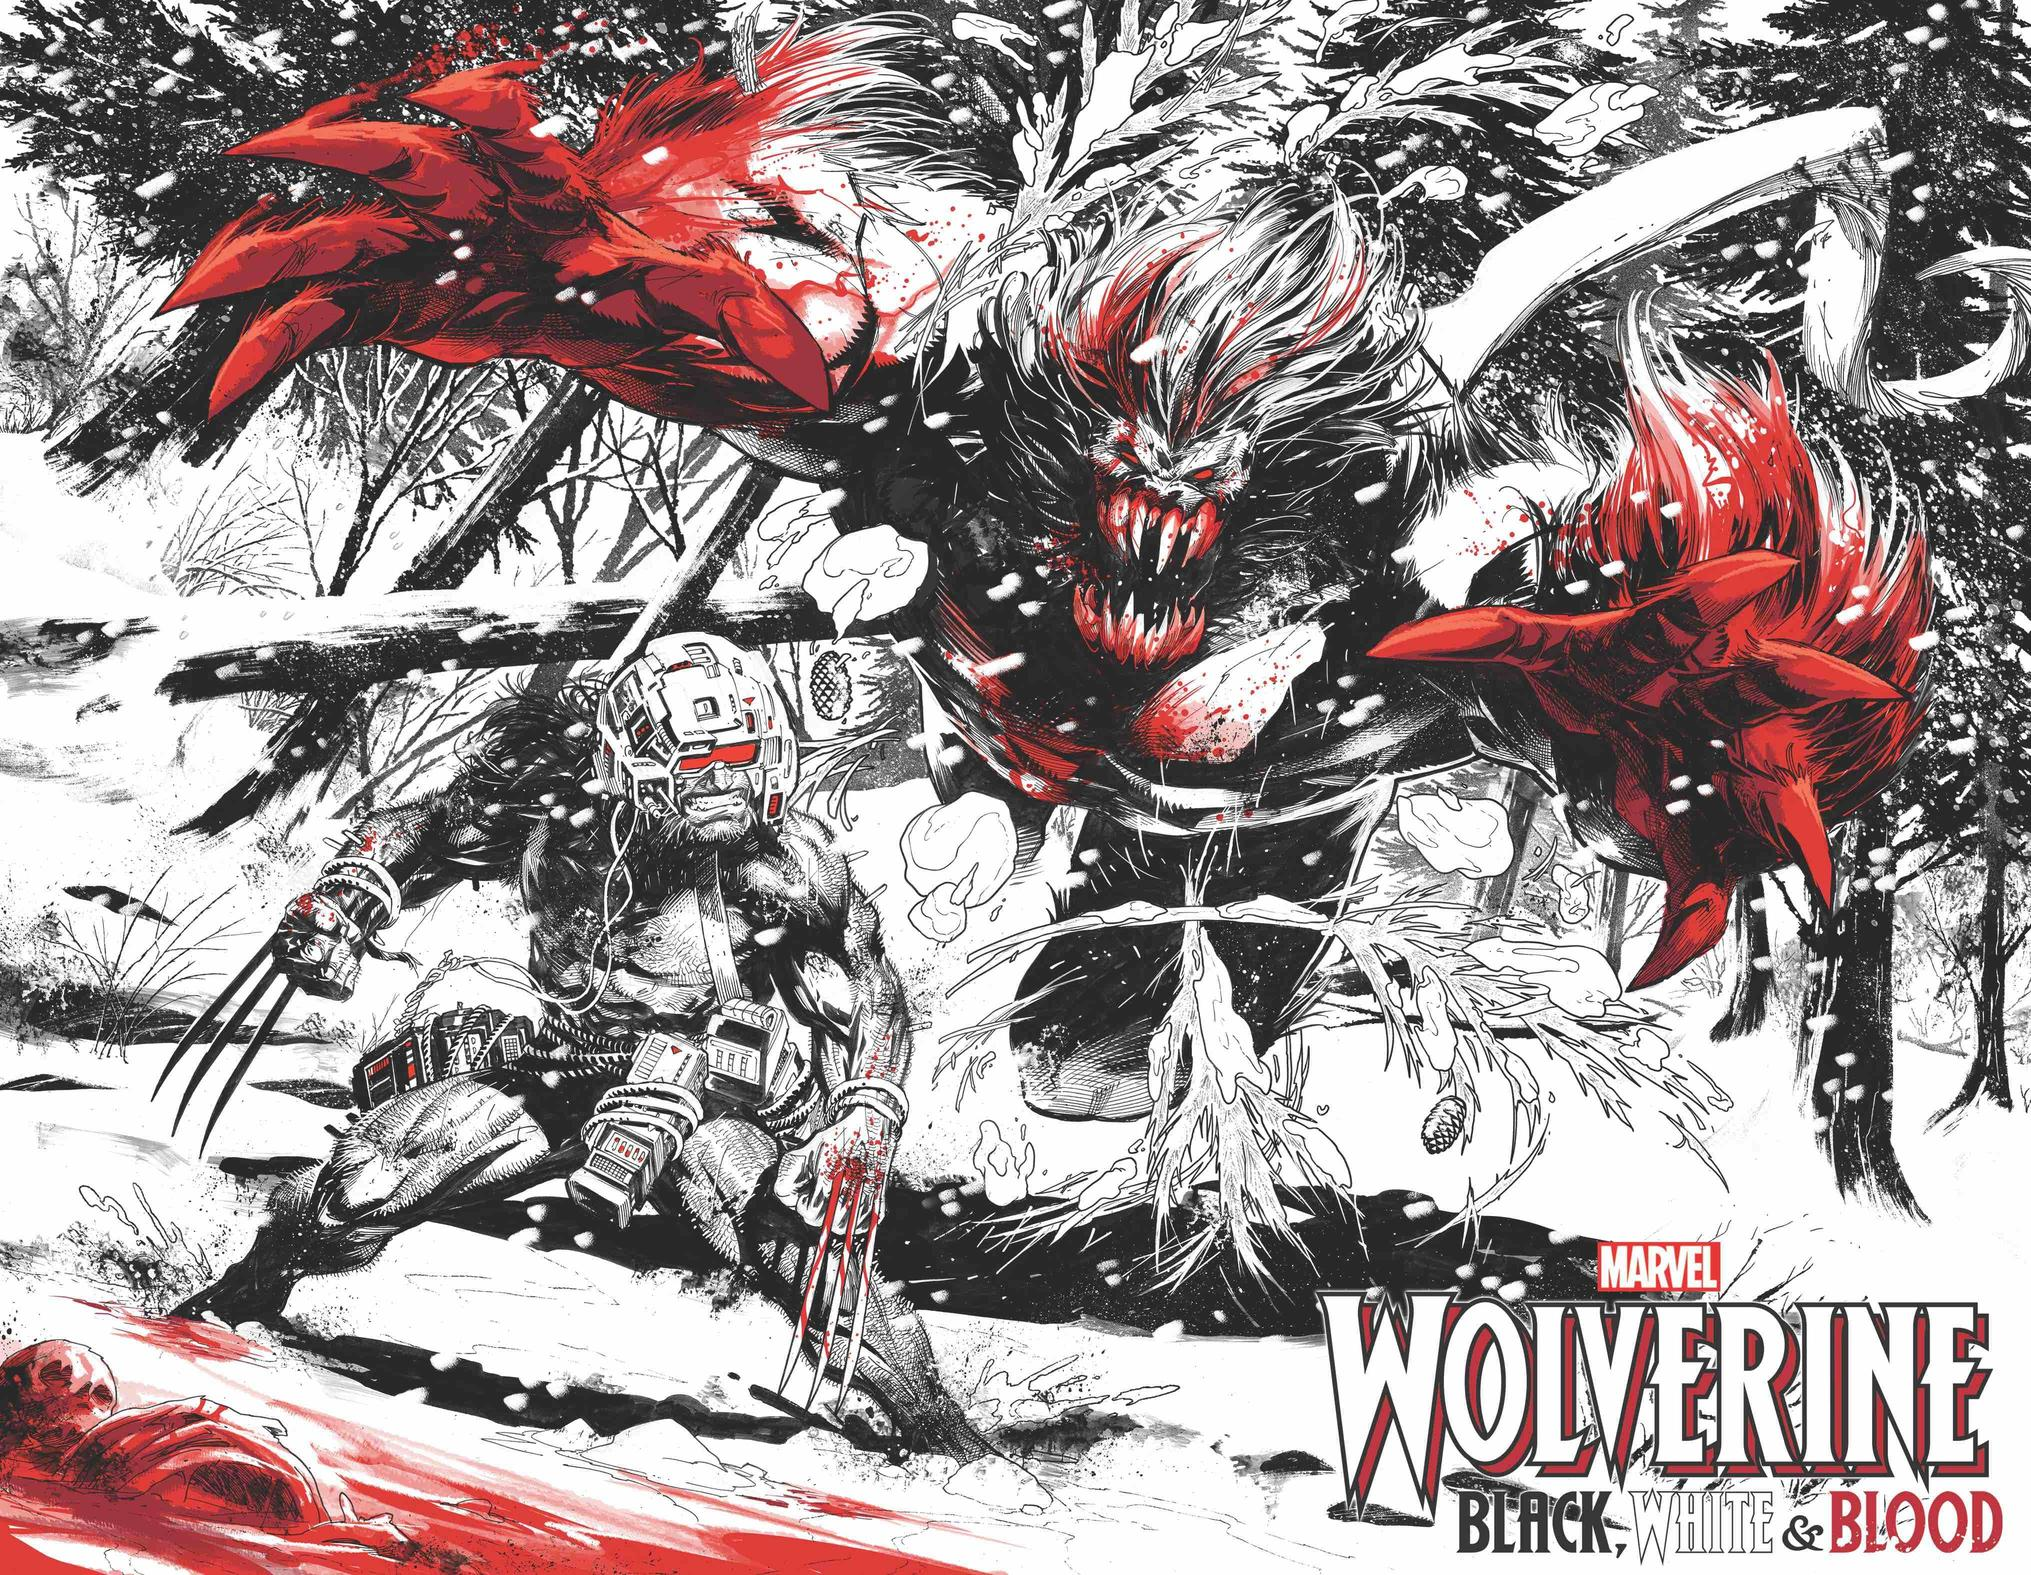 WOLVERINE: BLACK, WHITE & BLOOD #1 preview interiors by Adam Kubert and Frank Martin